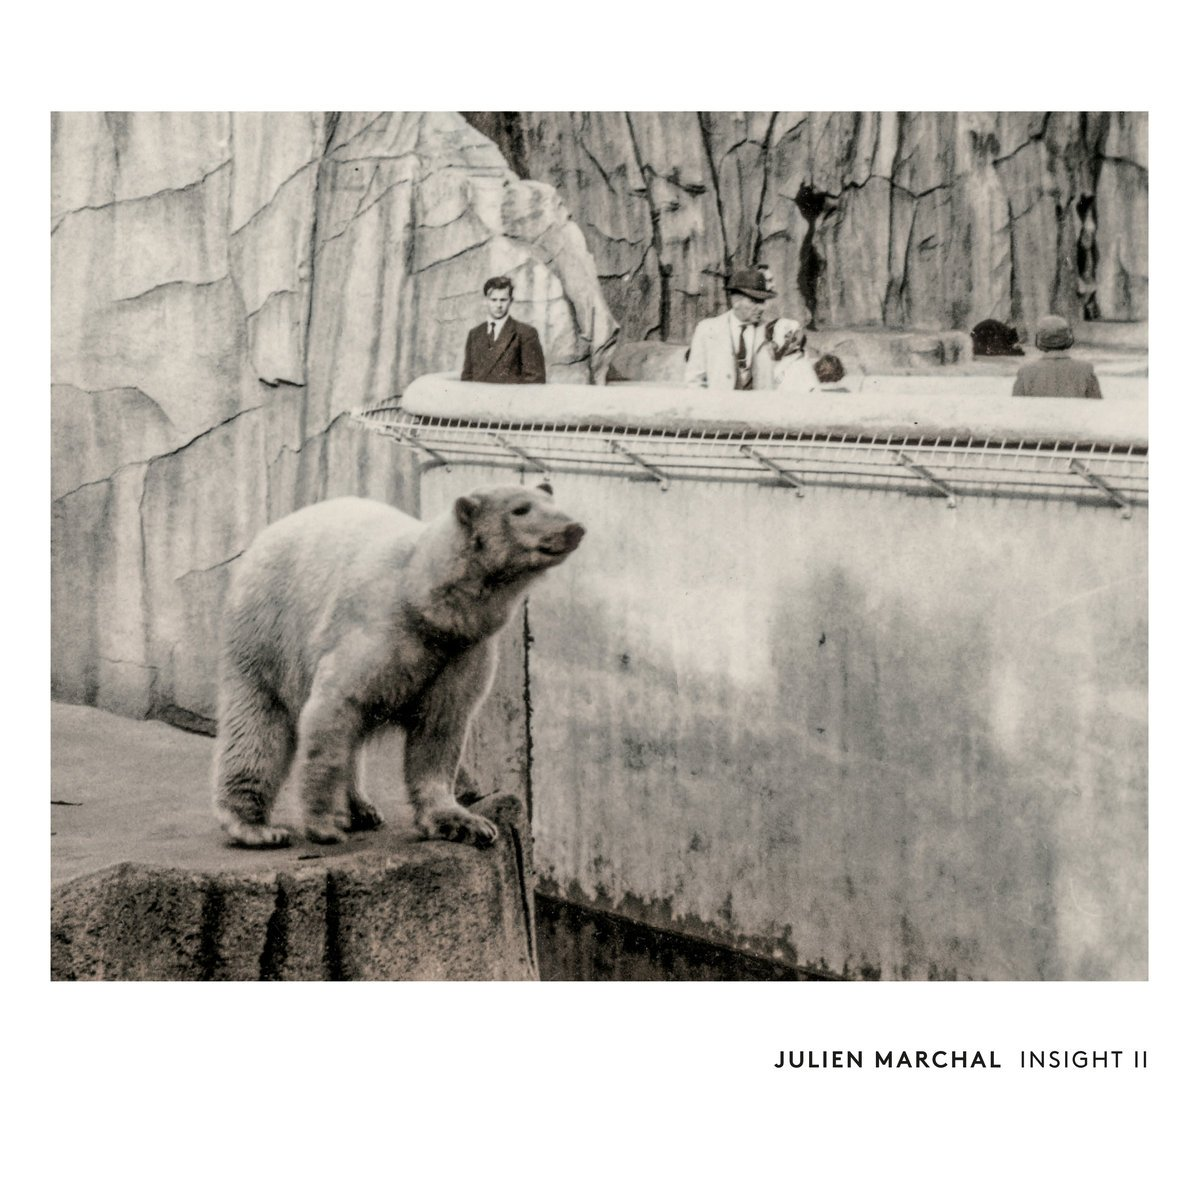 Julien Marchal - Insight II (2016)